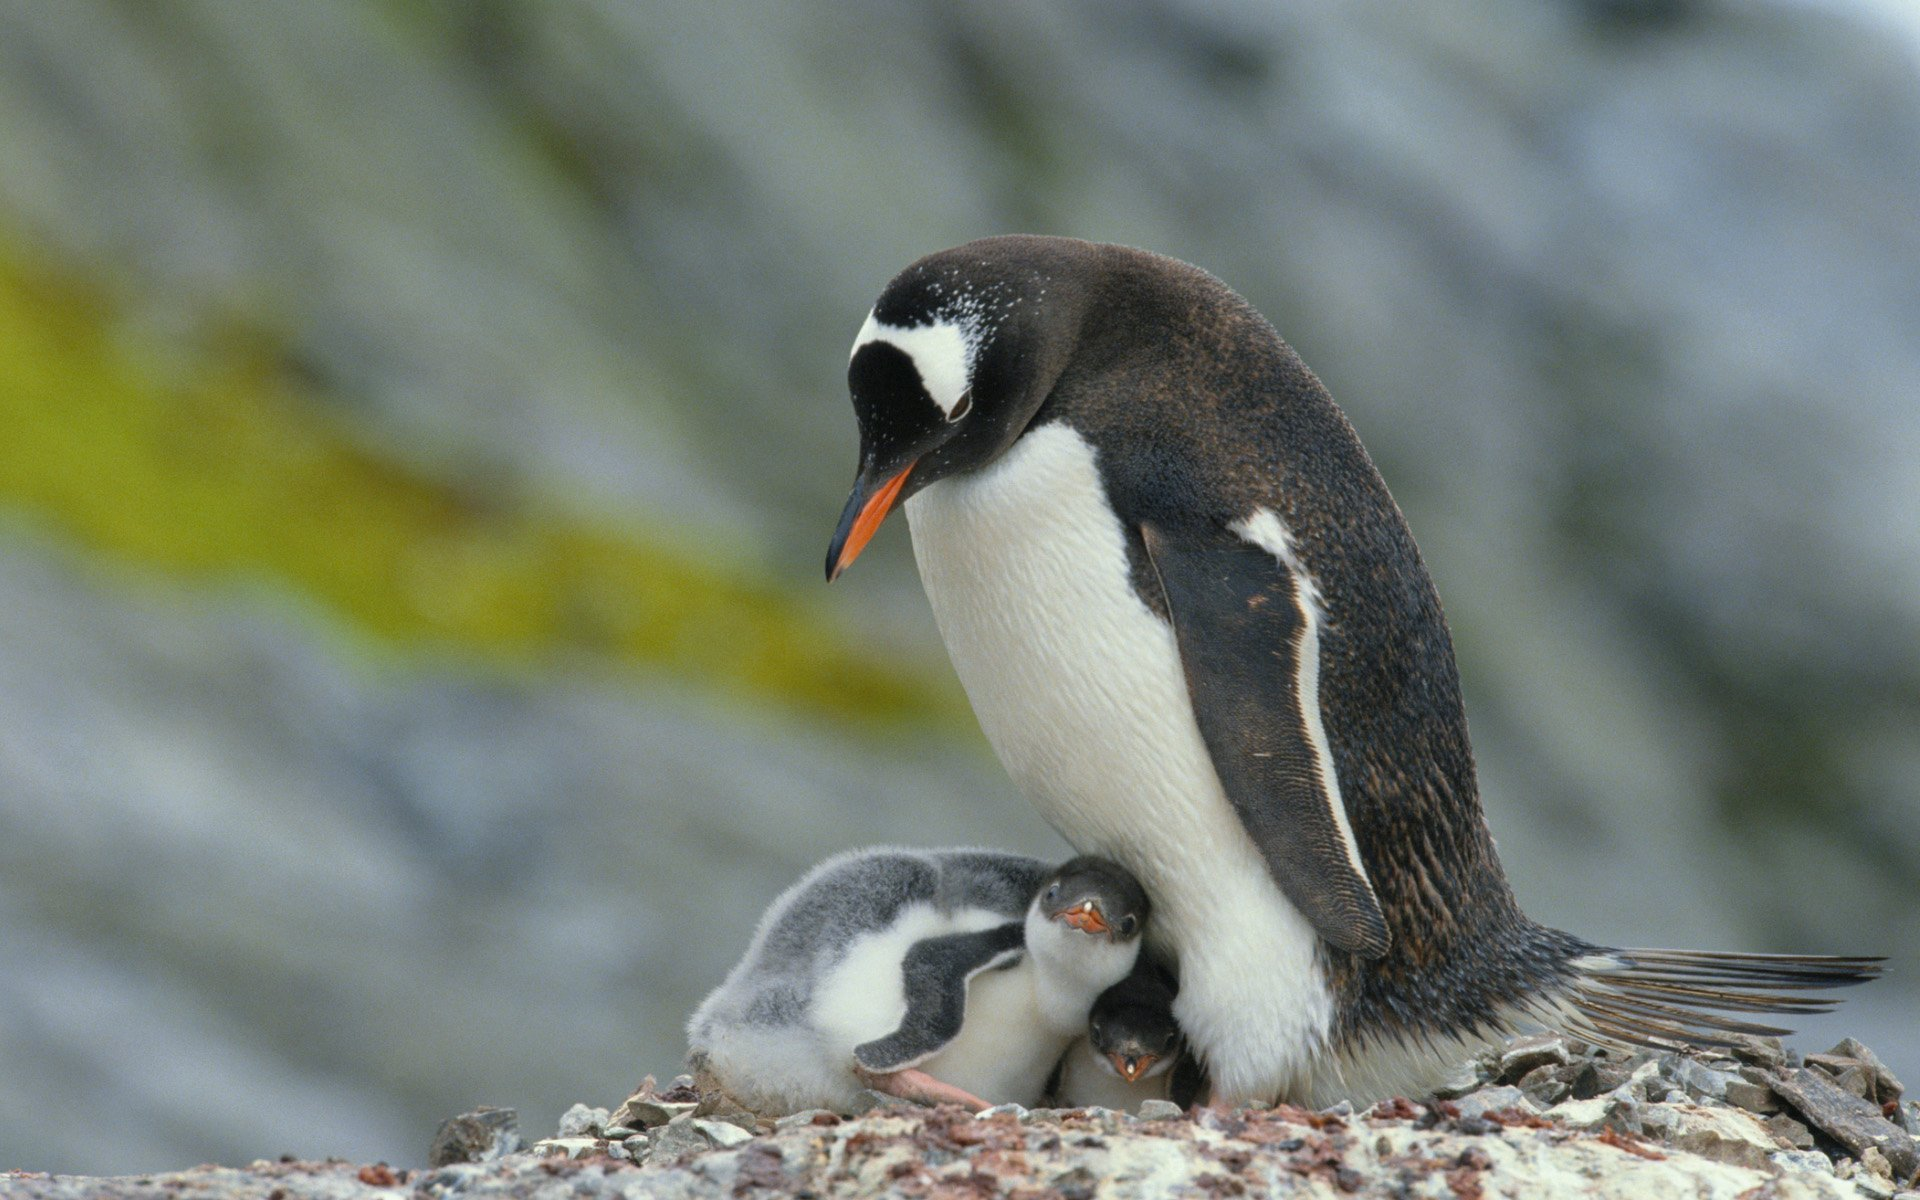 Cute Penguin Wallpaper Desktop Mother And Baby Animal Photography Wallpapers